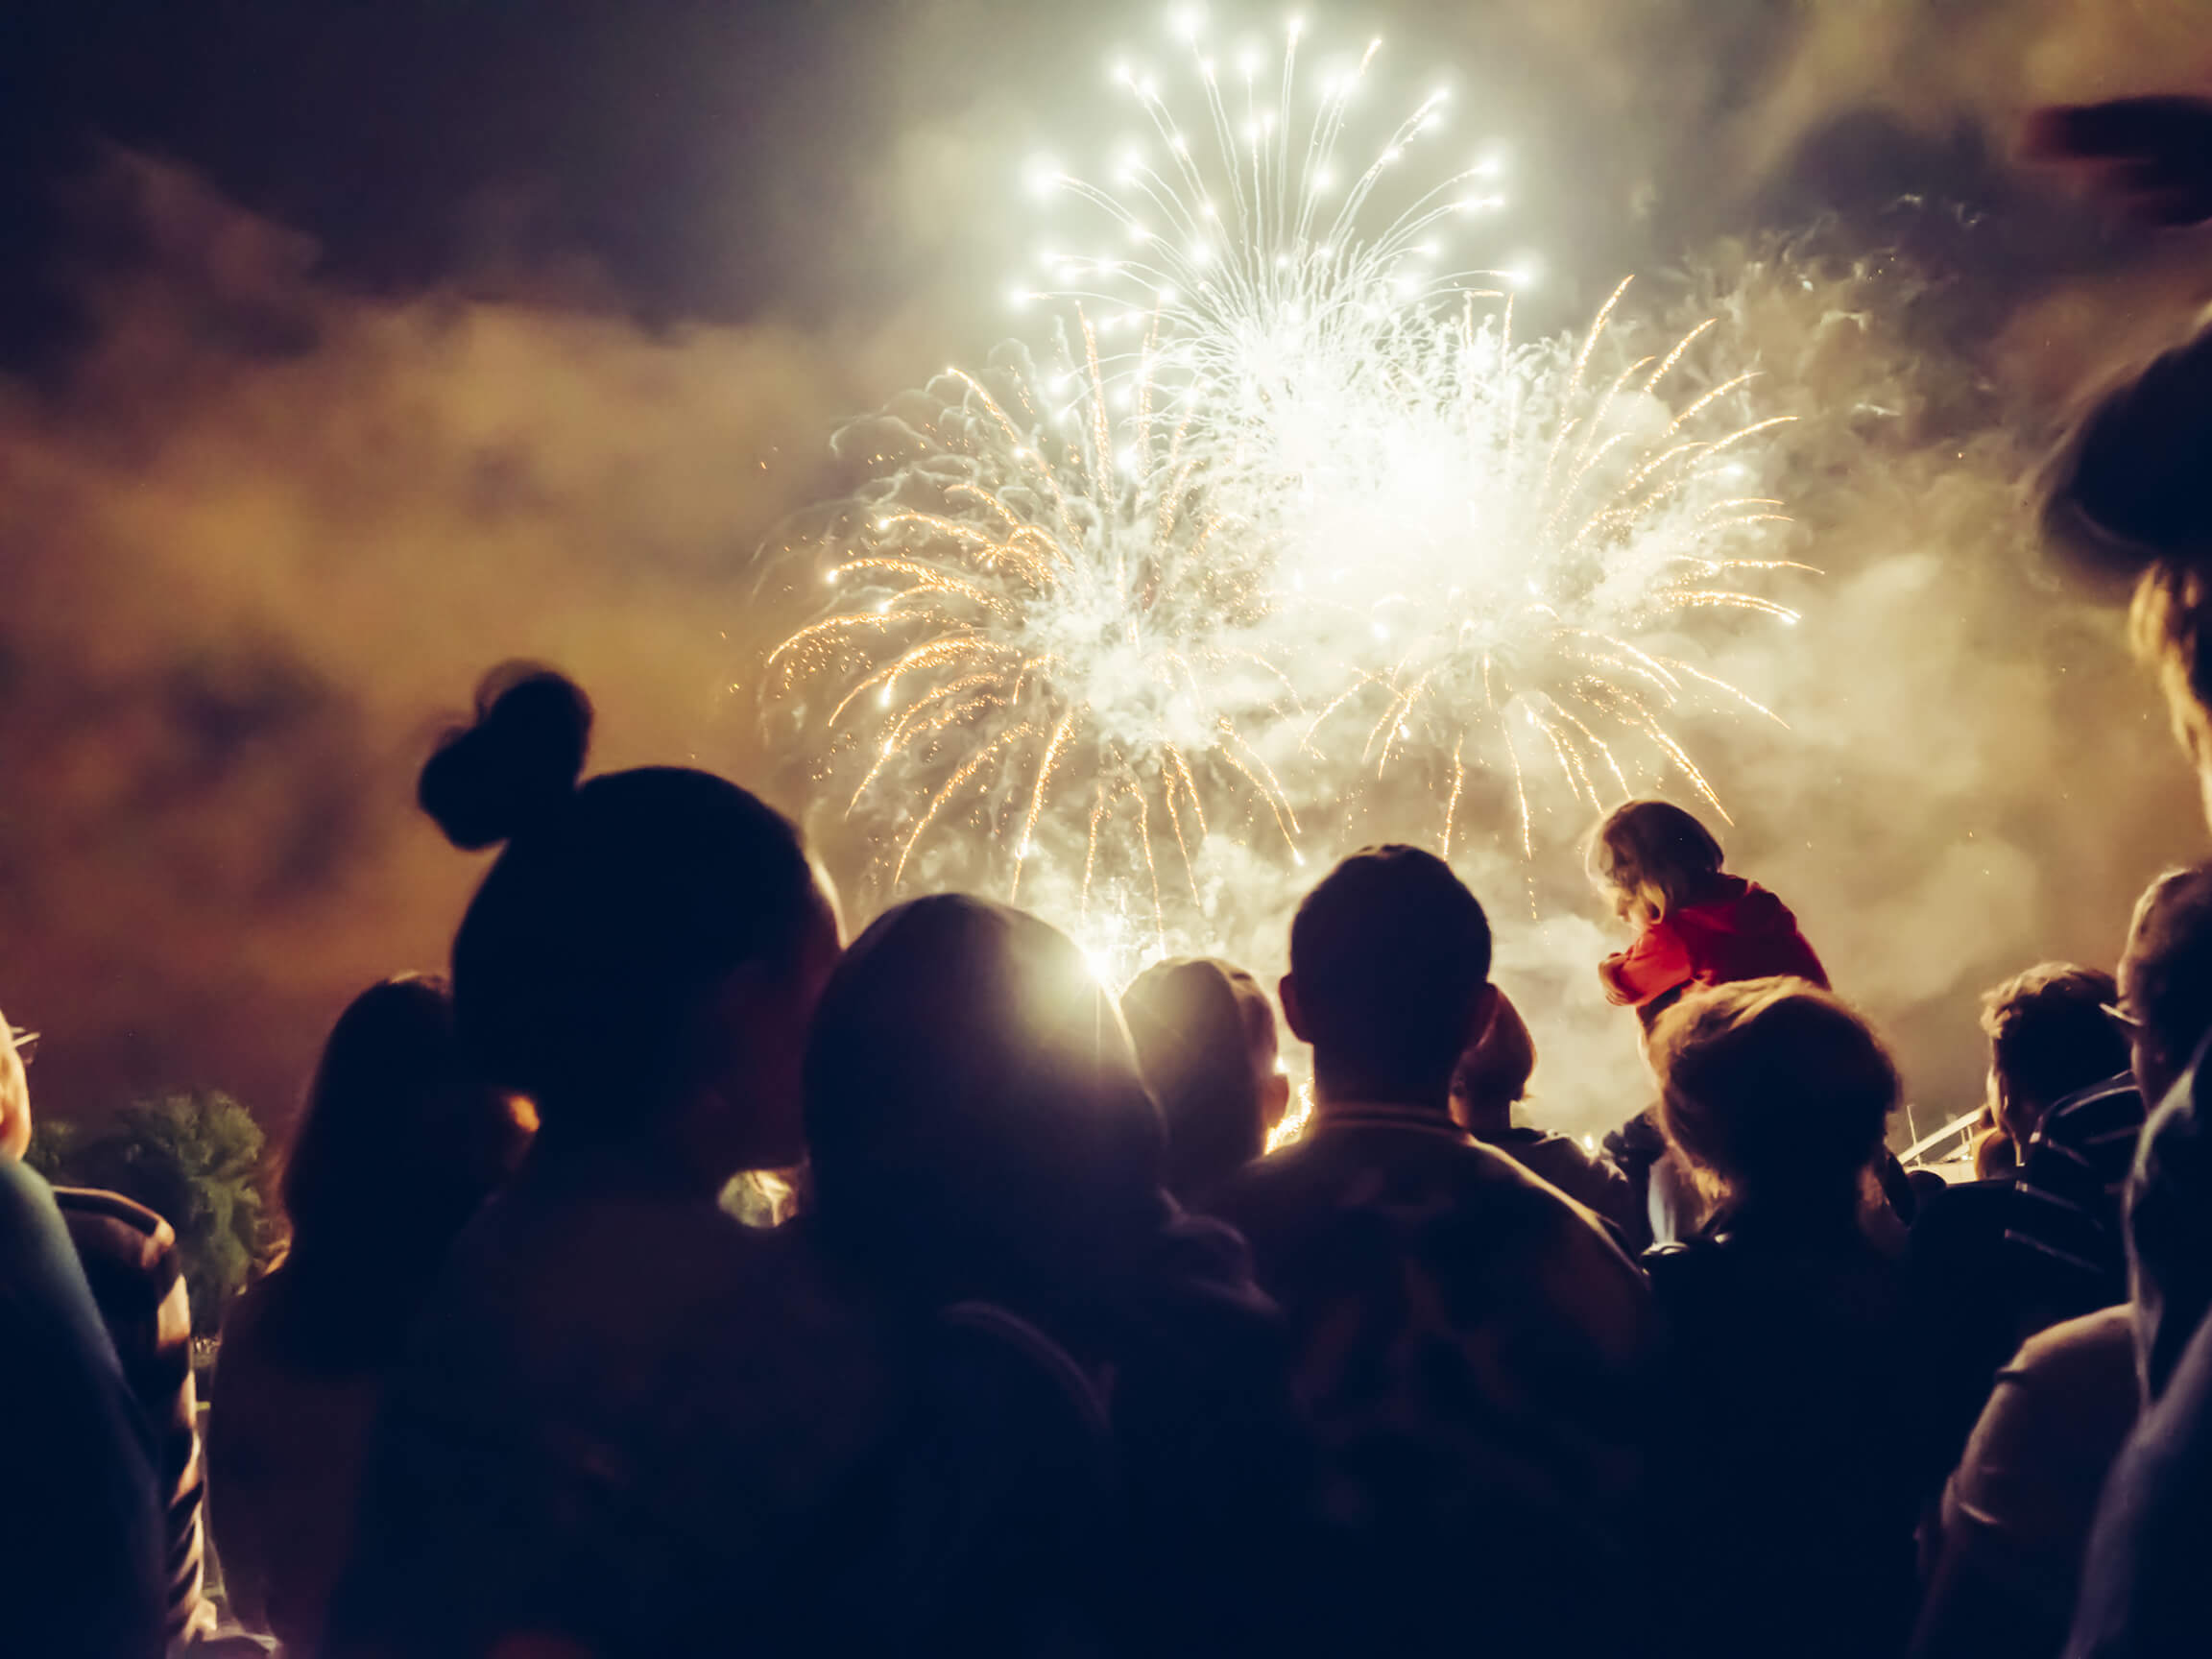 An Italian town said NO to noisy fireworks.